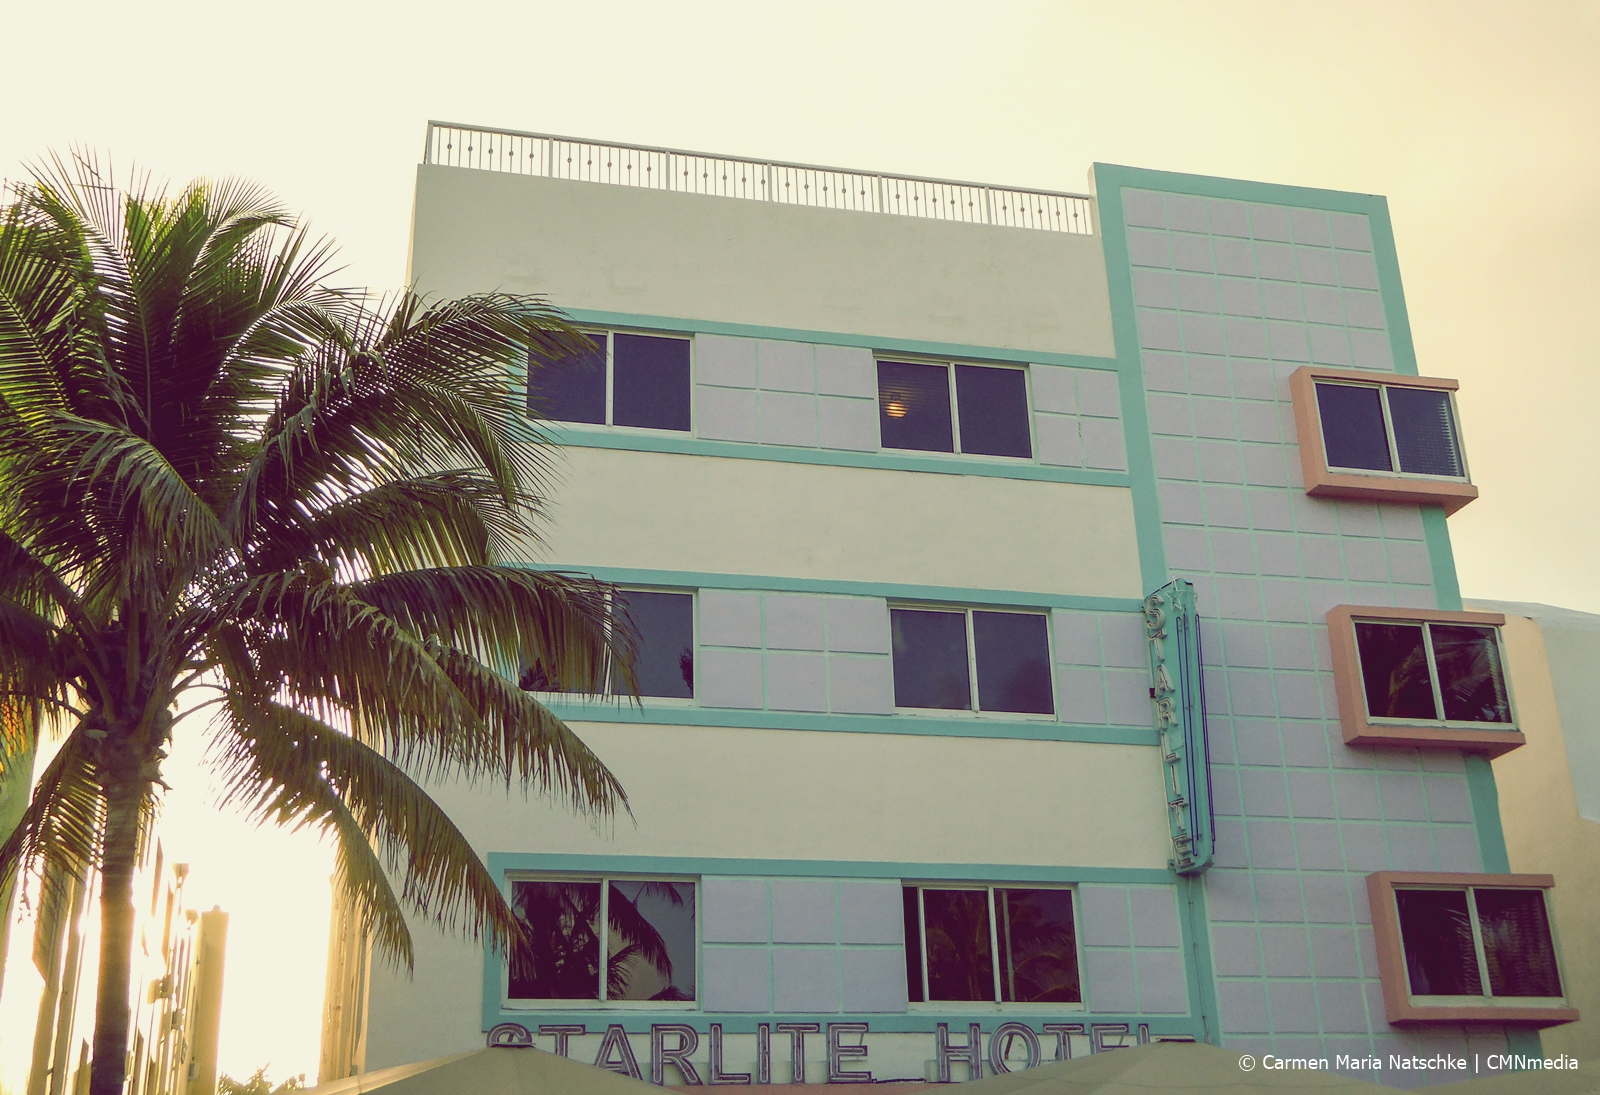 Starlite hotel Art Deco district Miami Beach. | Carmen Maria Natschke CMNmedia/The Decorating Diva. LLC